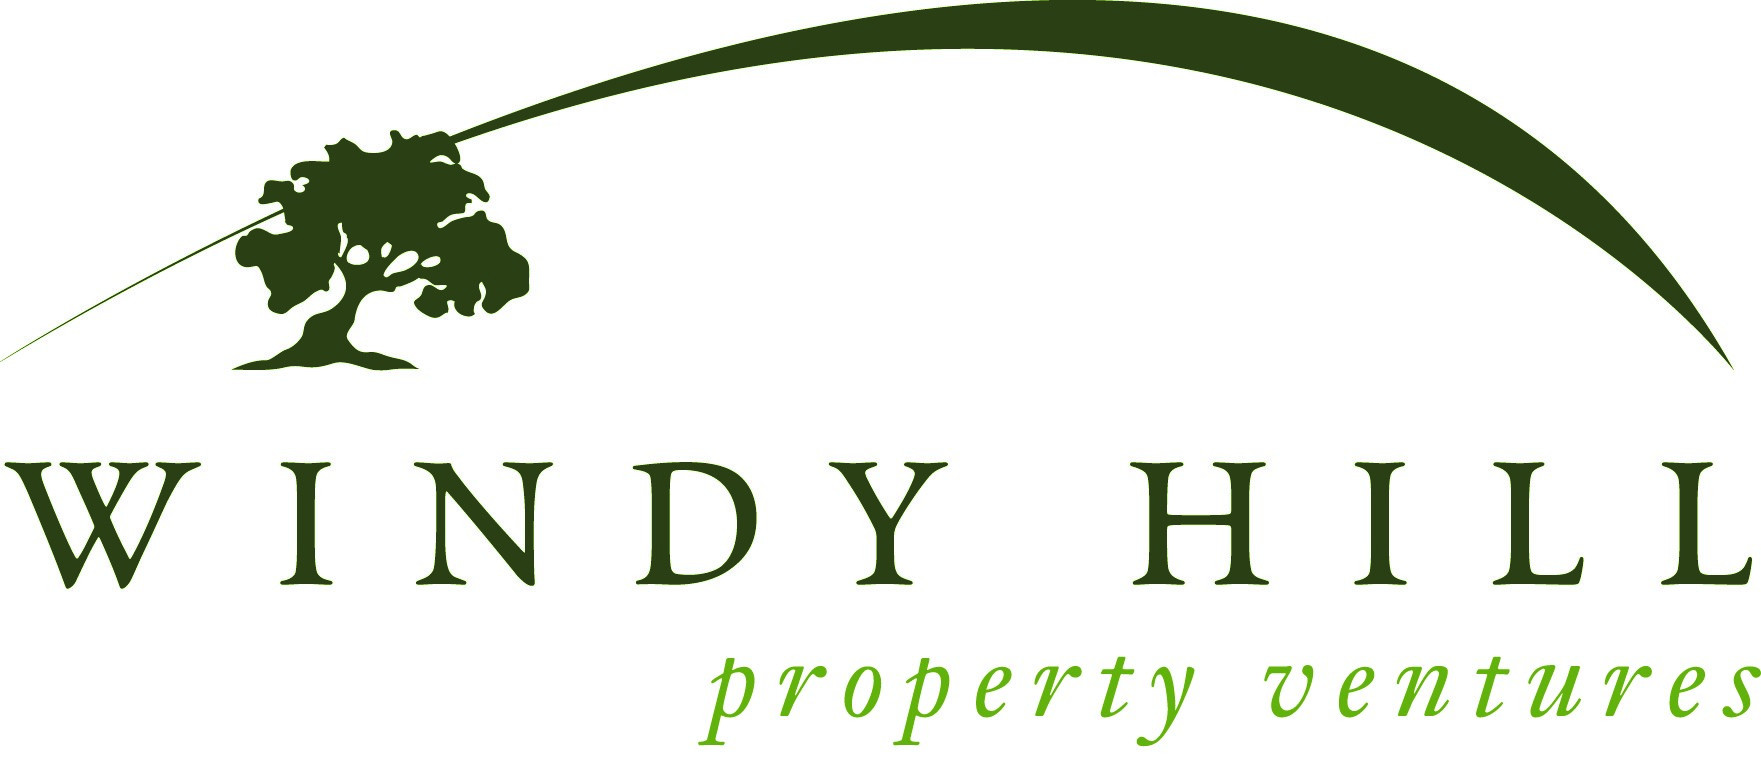 Windy Hill Property Ventures